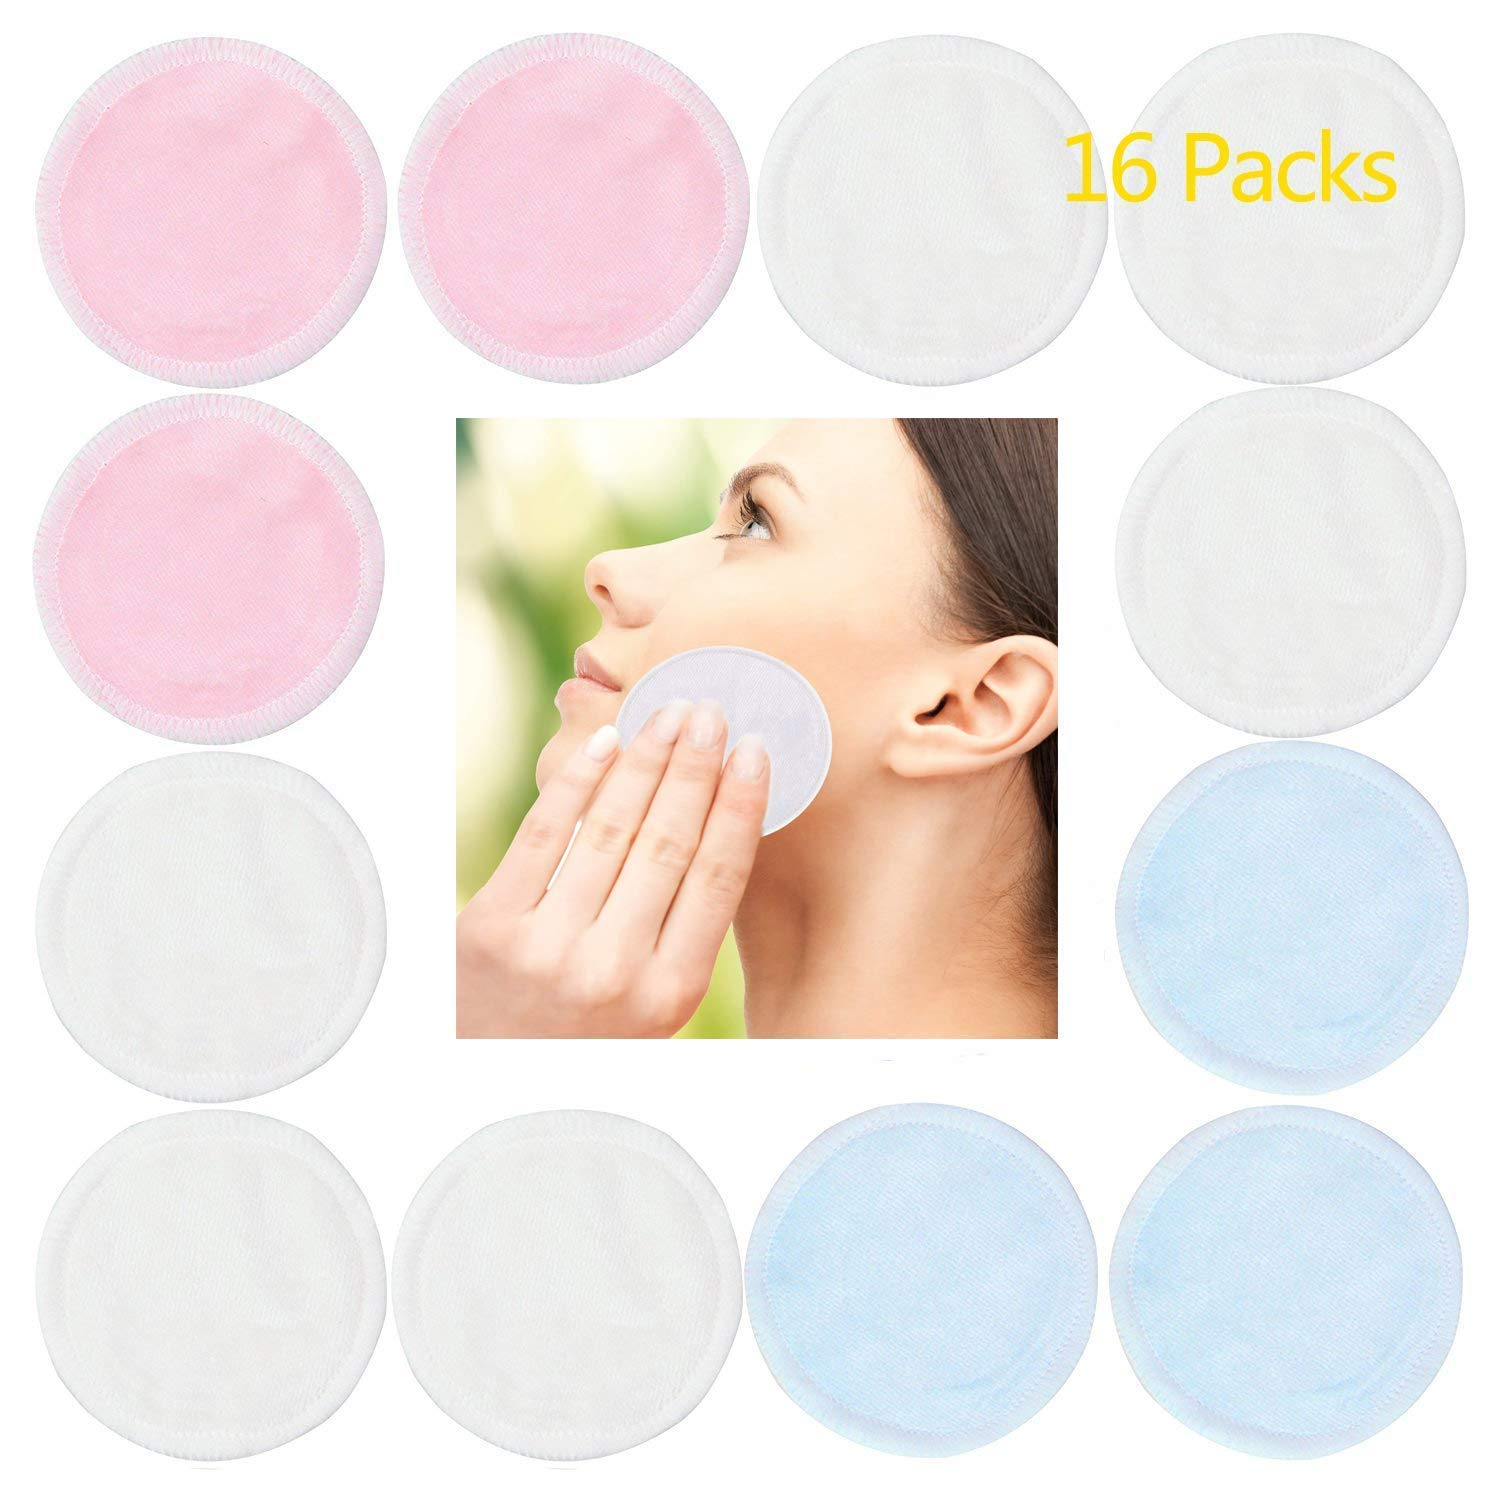 Bamboo Makeup Remover Pads with Laundry Bag - Chemical free Reusable Soft Facial Skin Care Wash Cloth Pads - Wipes Face Clean (Bamboo Velour) 3 Color 16 Packs Caspro